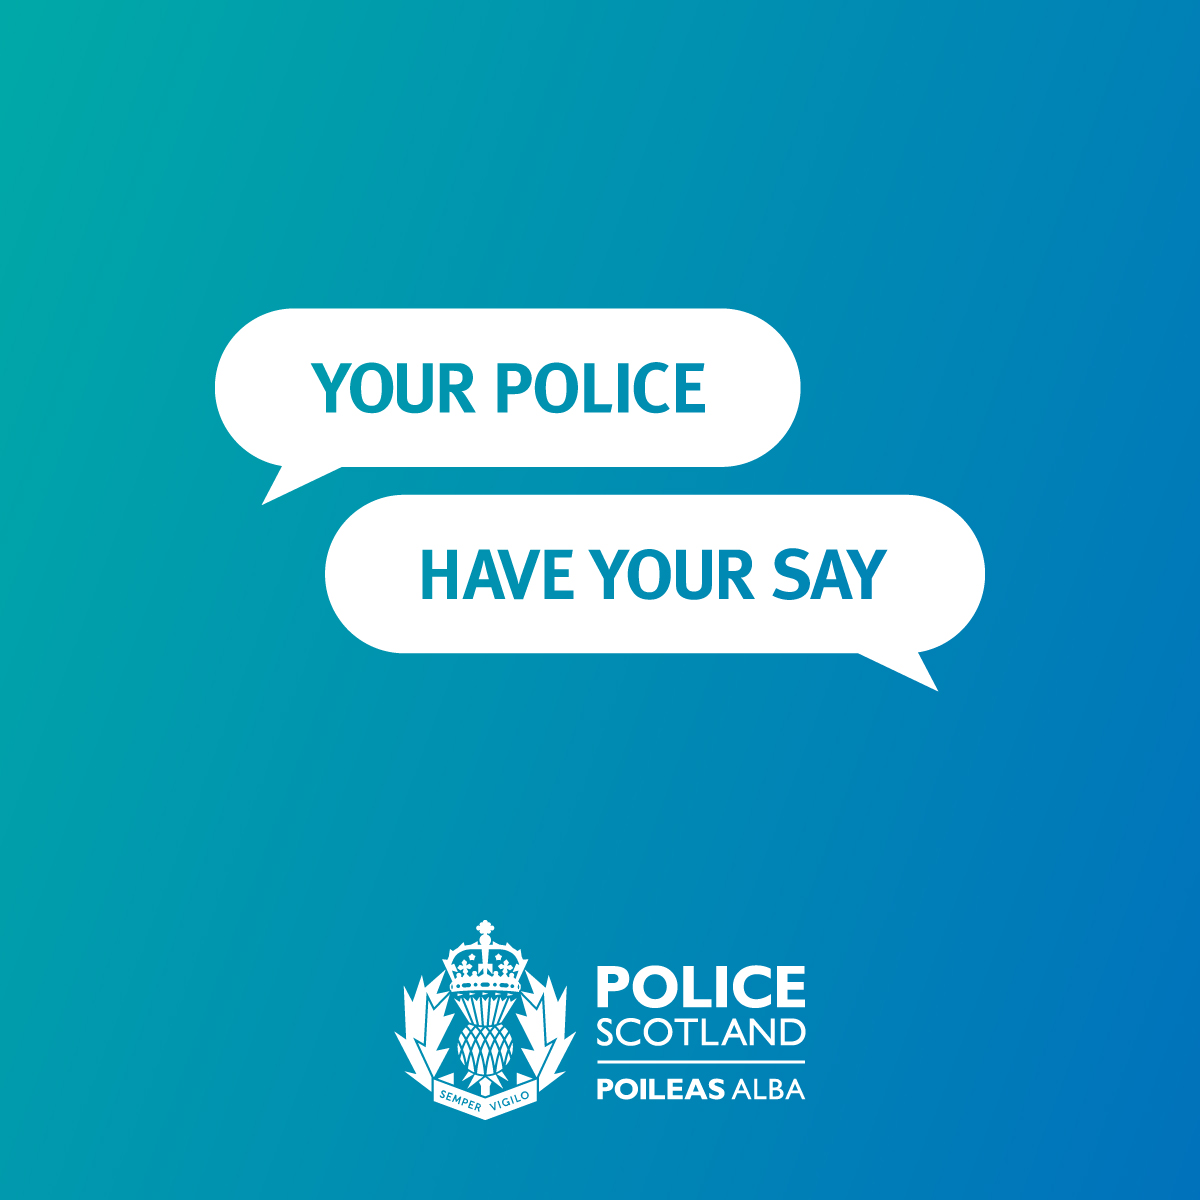 We are #YourPolice  Complete our survey & help shape local policing in your area.   👮 Understanding the views & priorities of Scotland's diverse communities is important. What are we getting right & what we can we do better?  ➡️ https://t.co/eOg1ujfBB0 https://t.co/SjD93S8biI